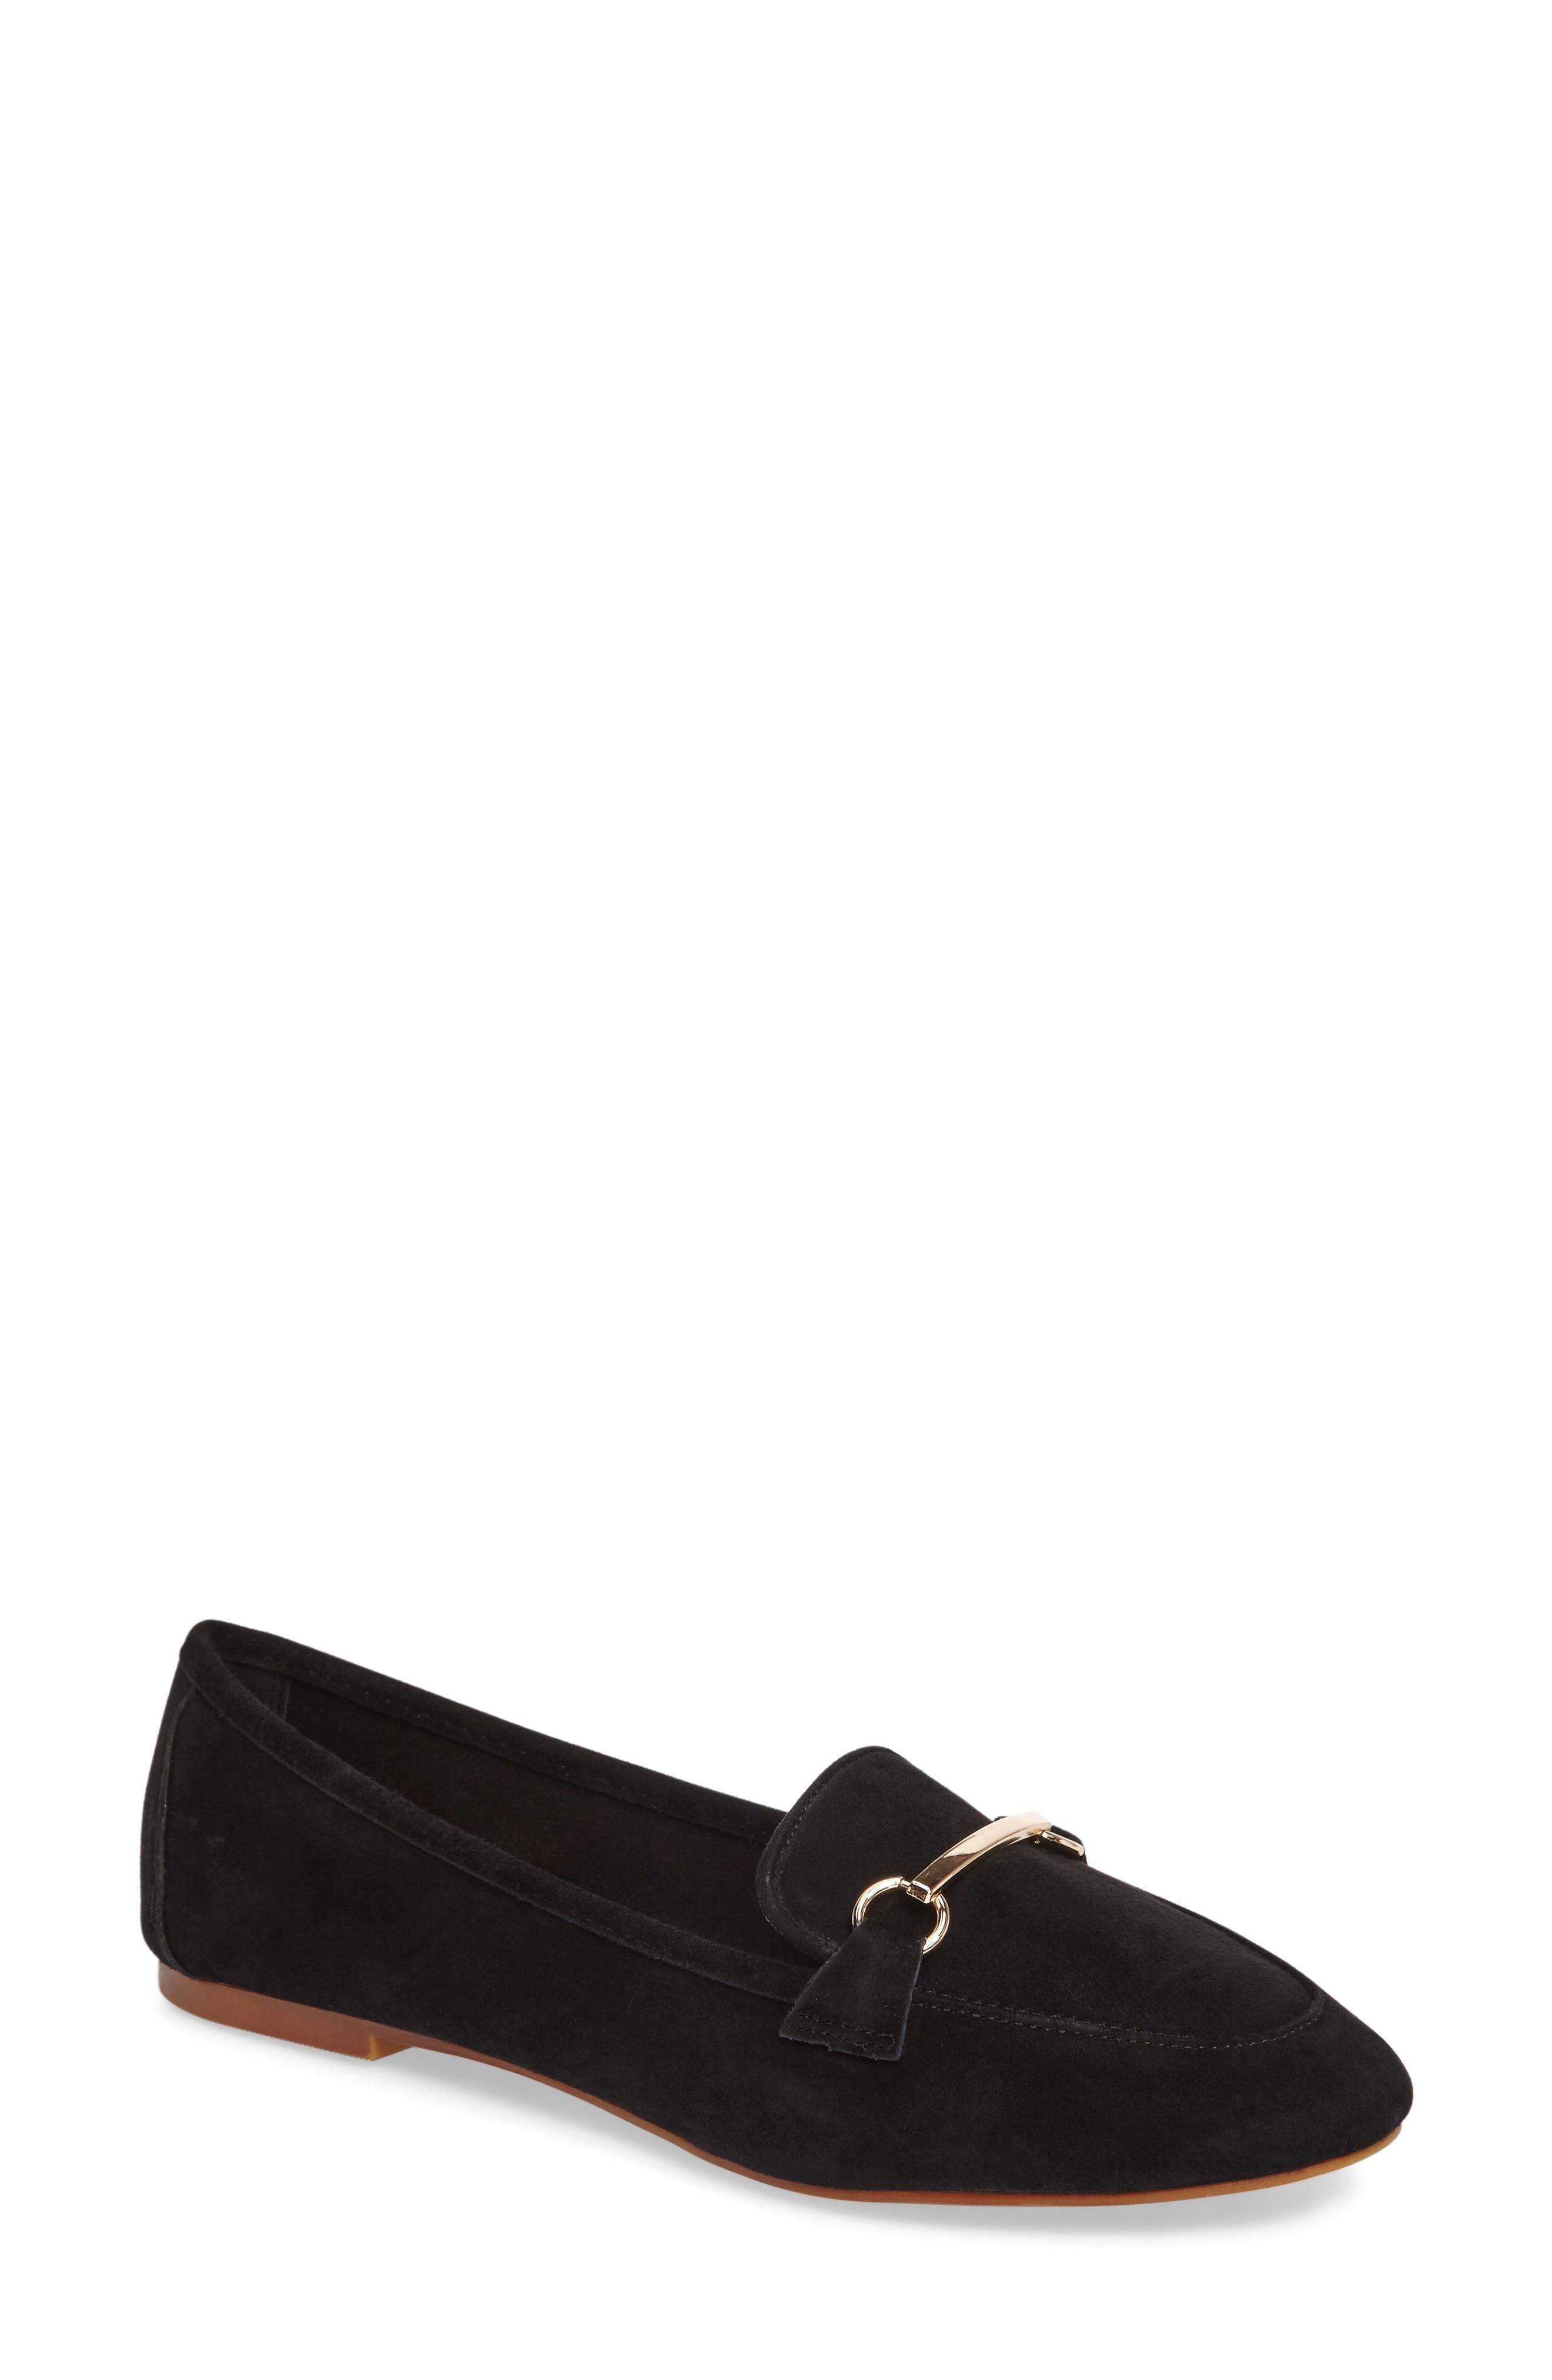 Libby Softy Loafer,                             Main thumbnail 1, color,                             001